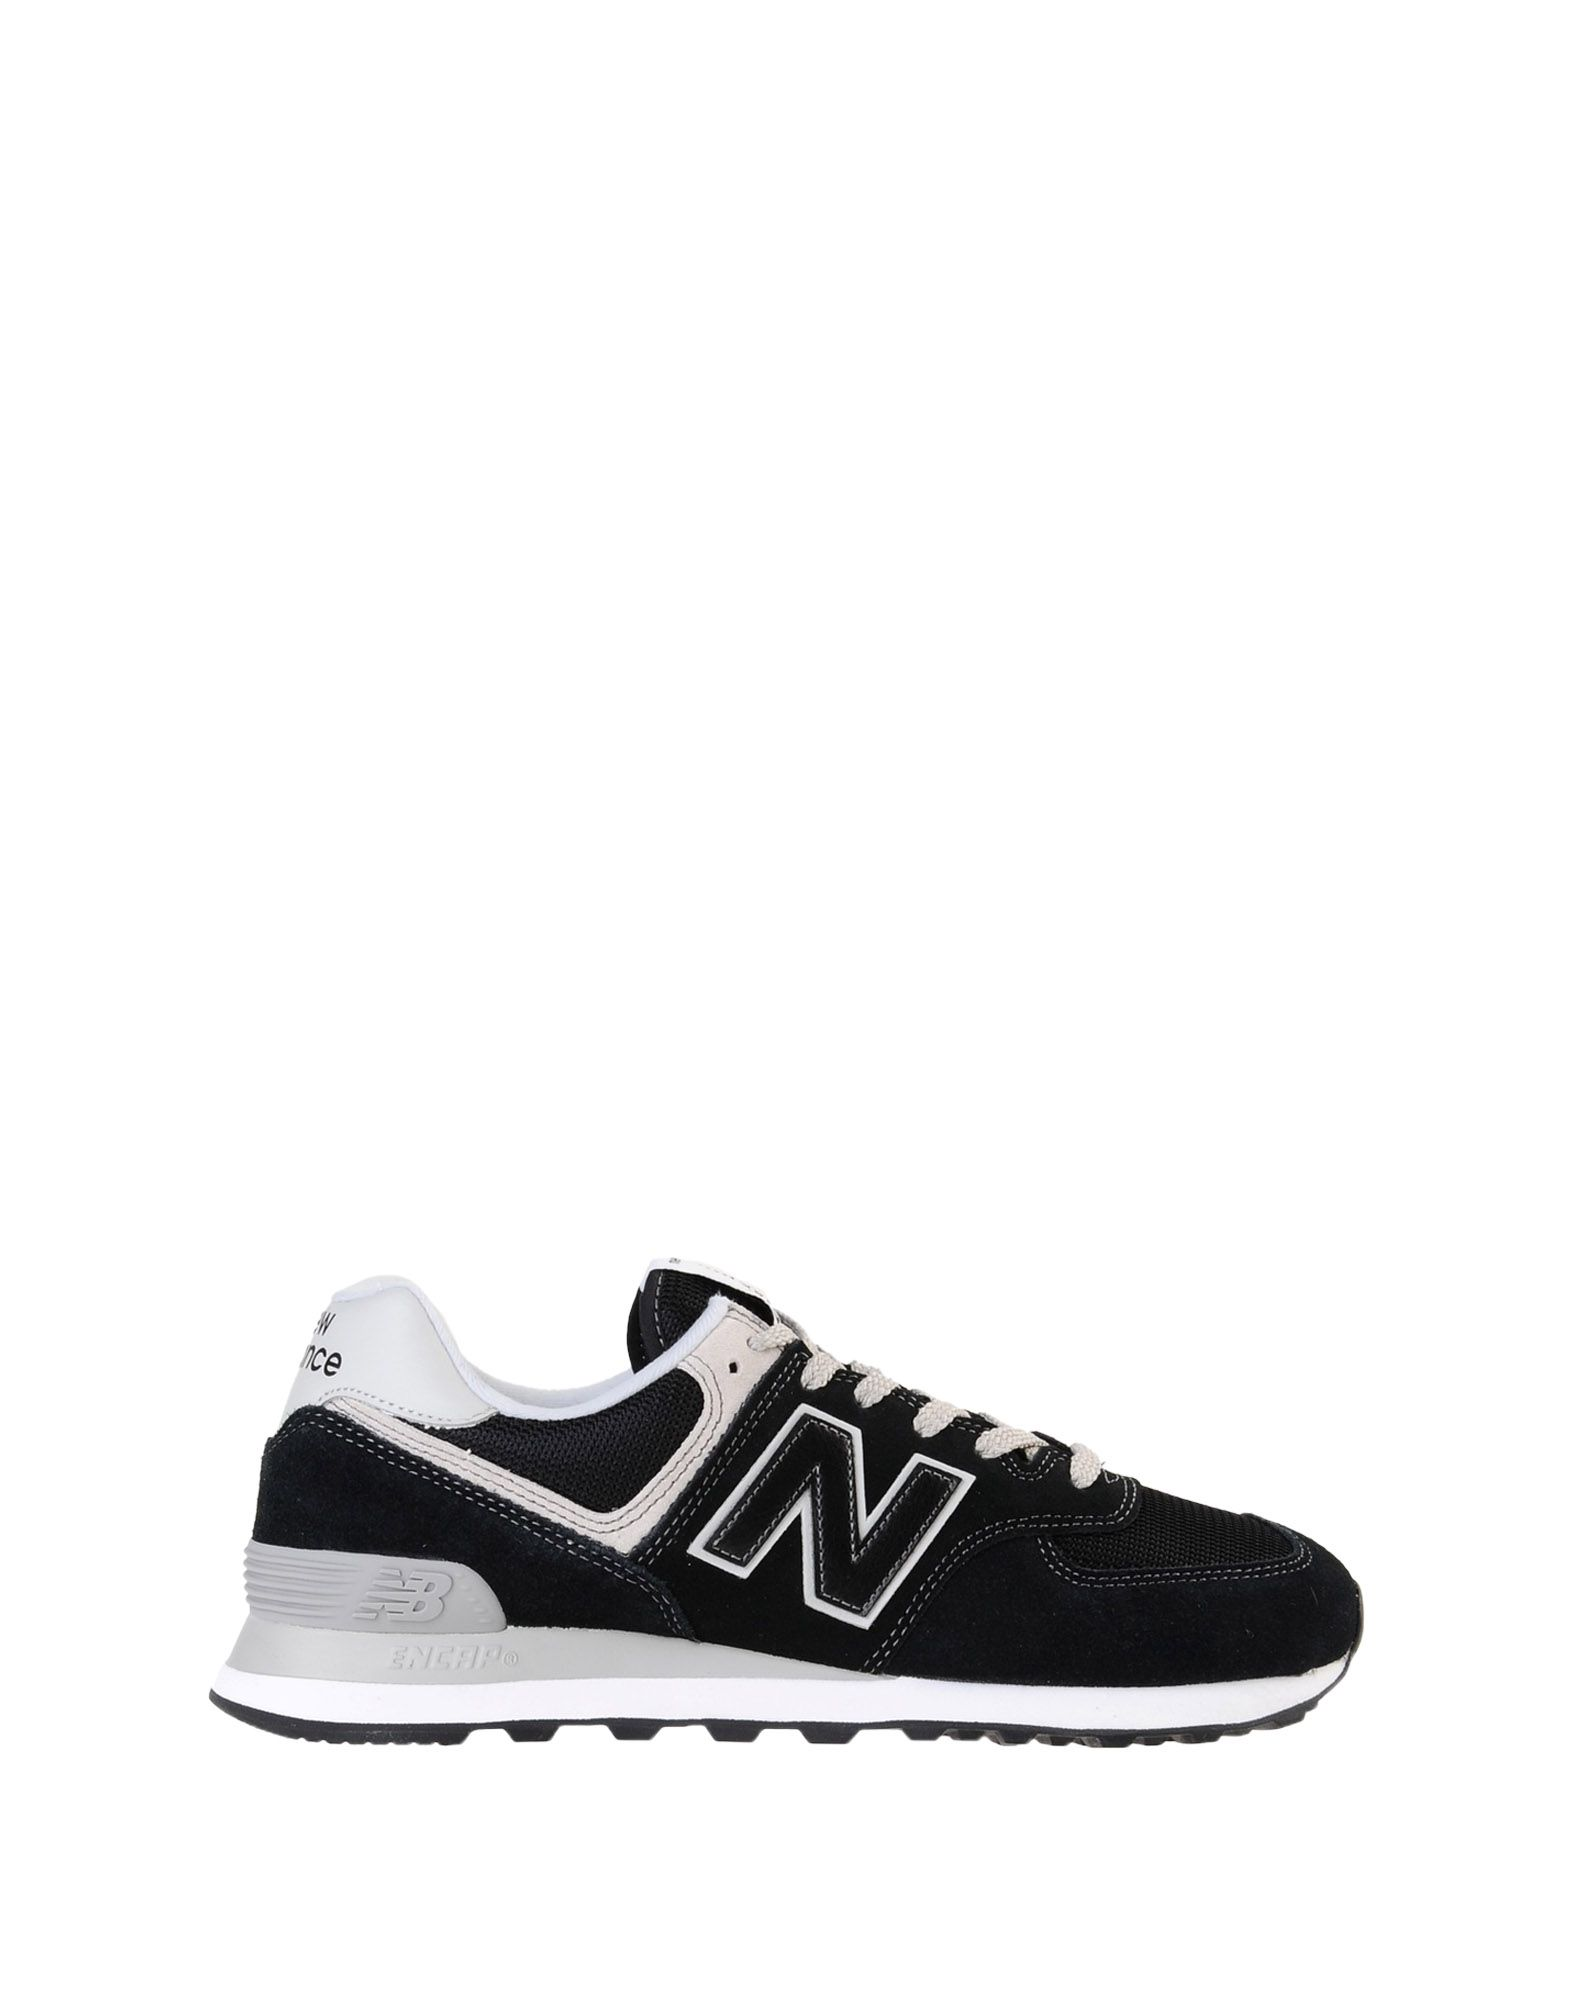 Sneakers New Balance 574 Suede/Mesh Core Colors - Uomo - 11467045VR